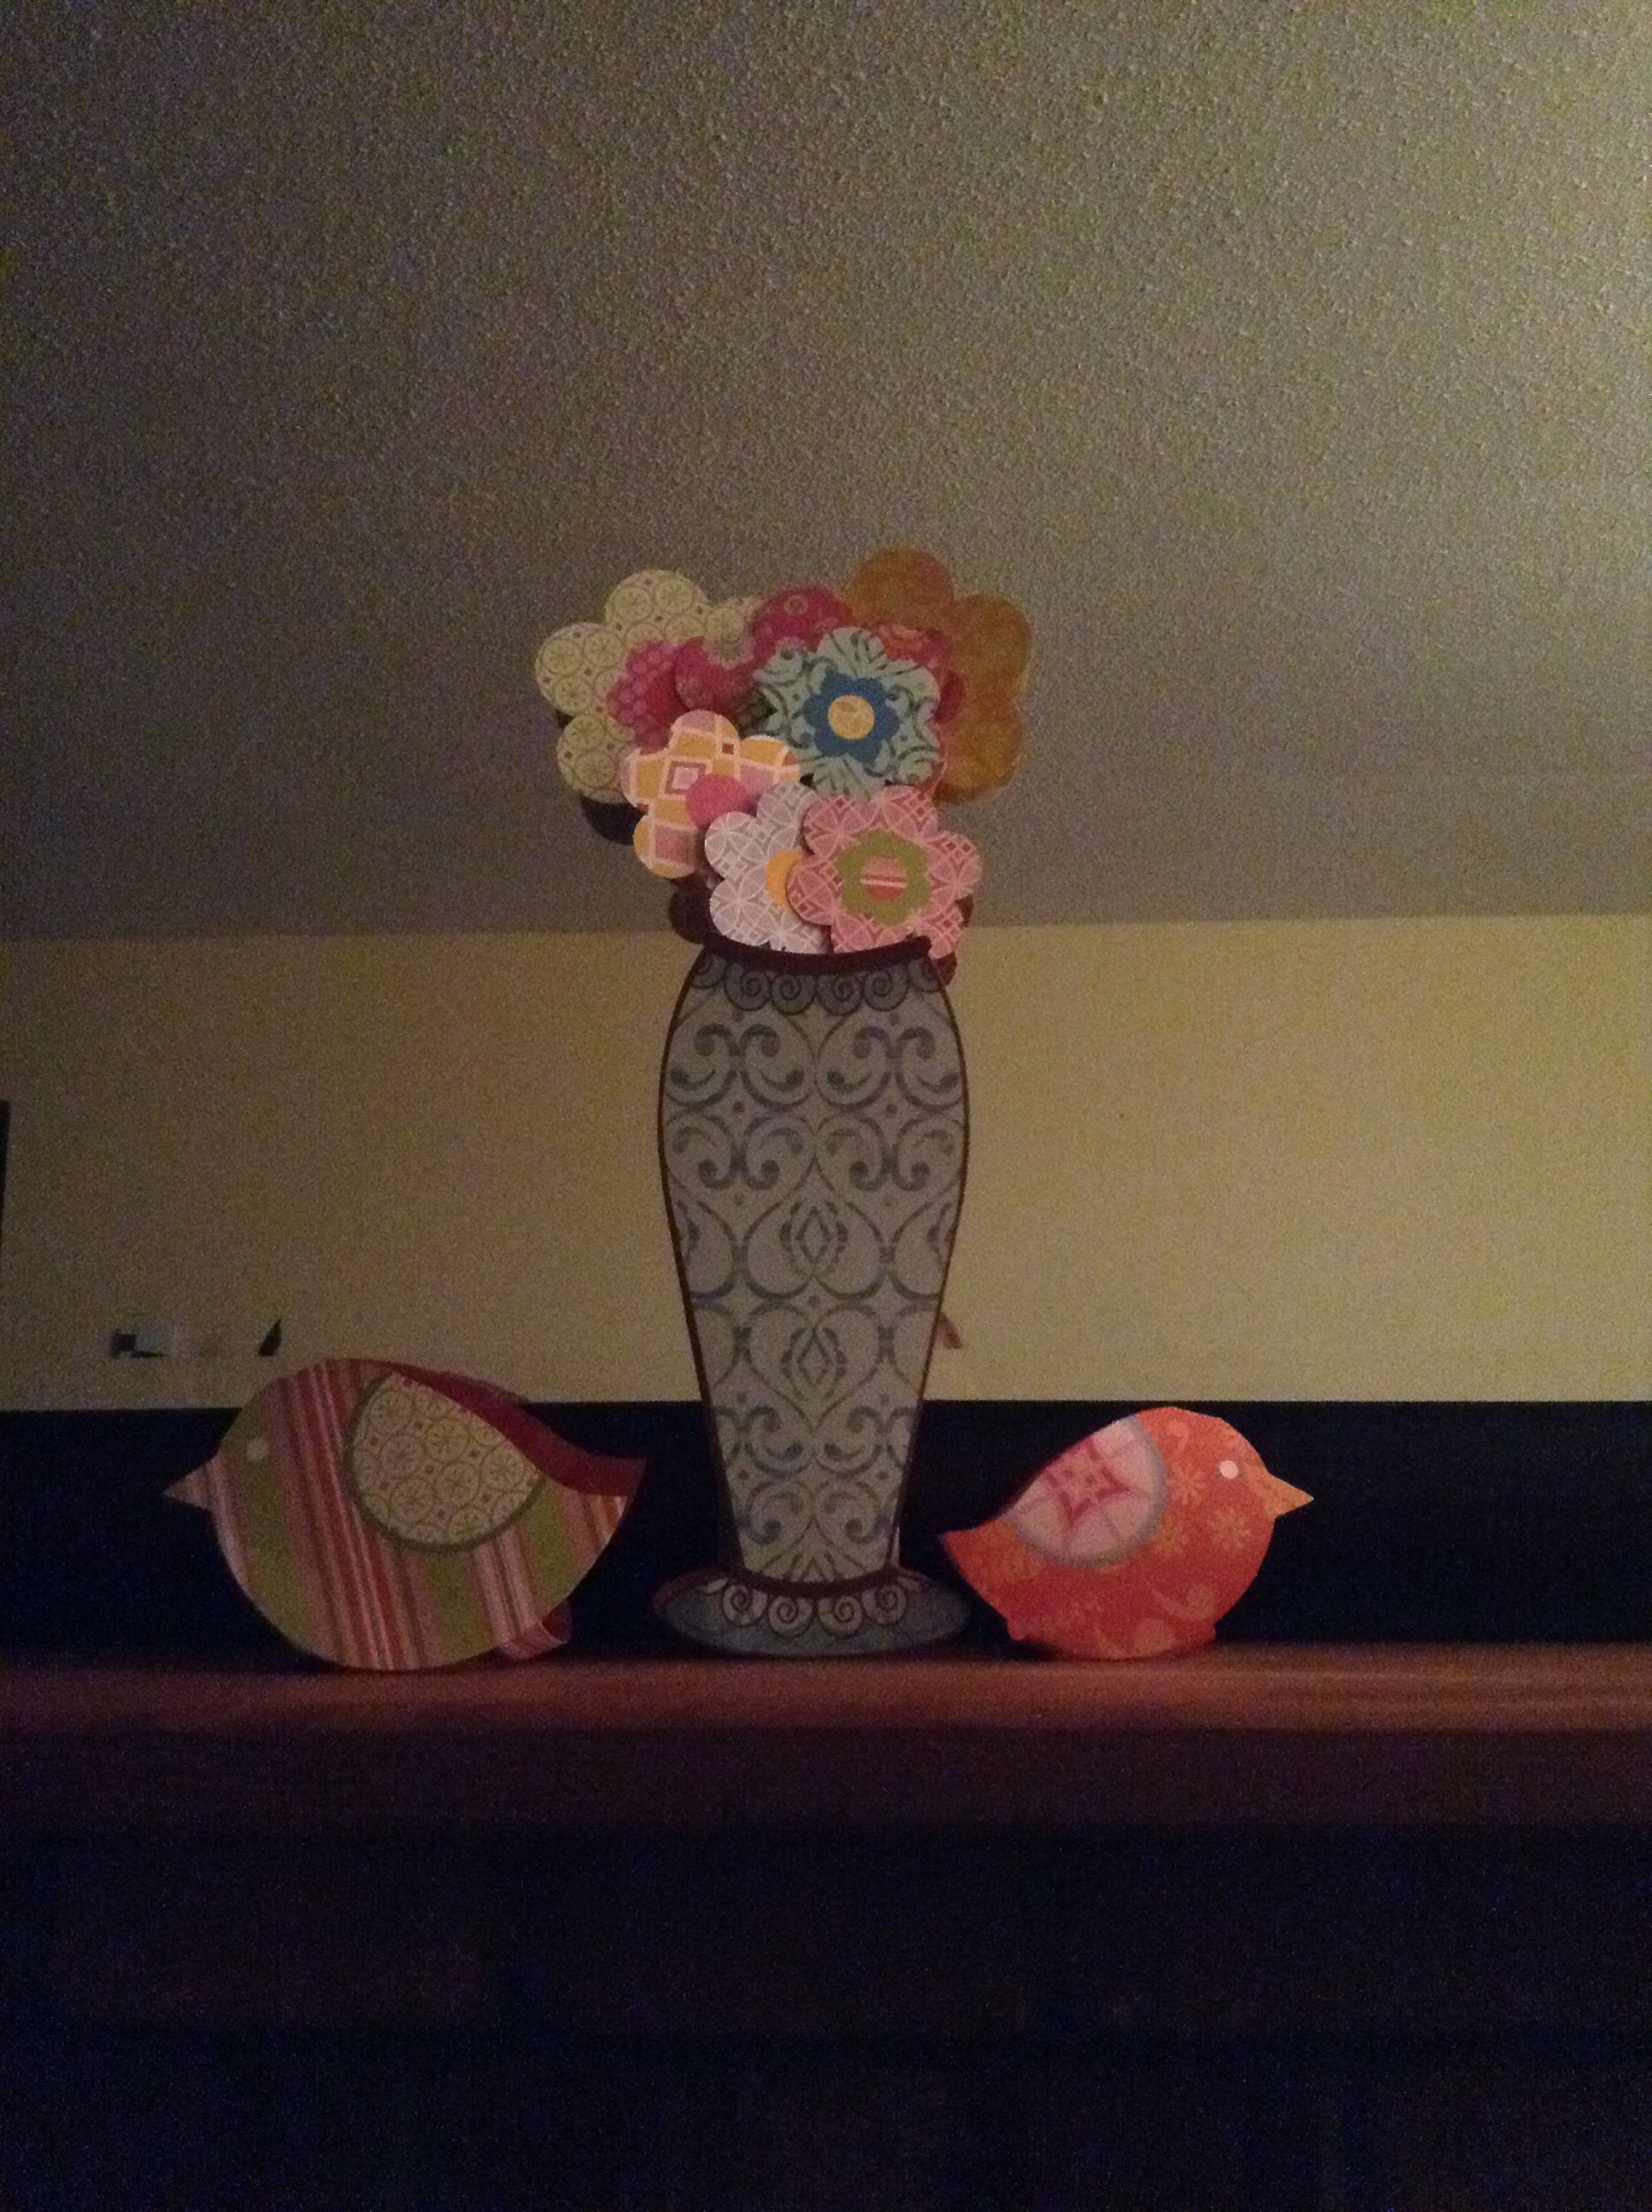 Cute home made decor made by my hands